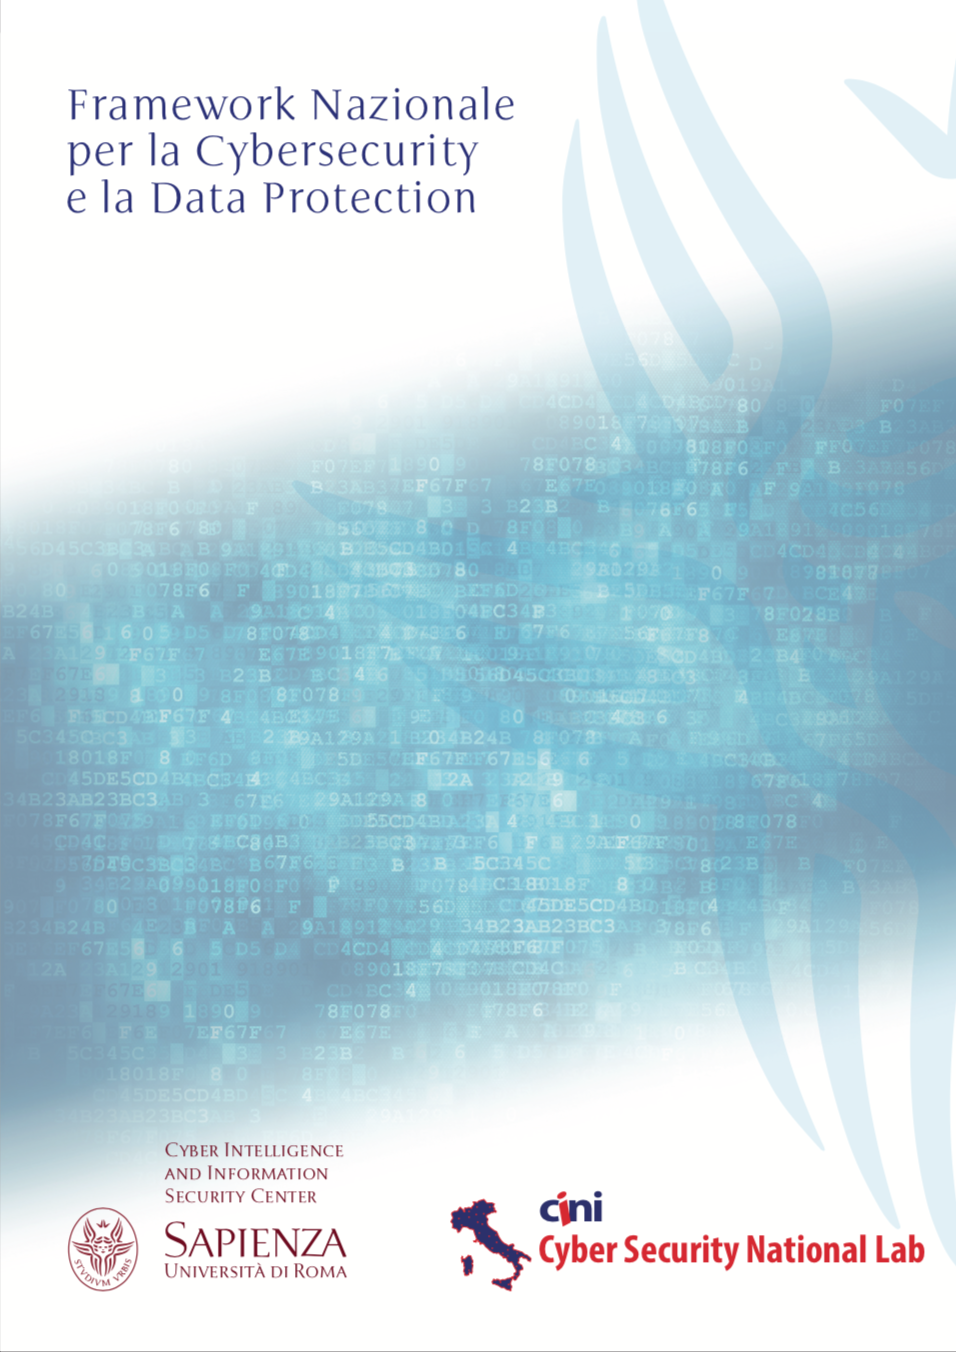 Framework Nazionale per la Cybersecurity e la Data Protection